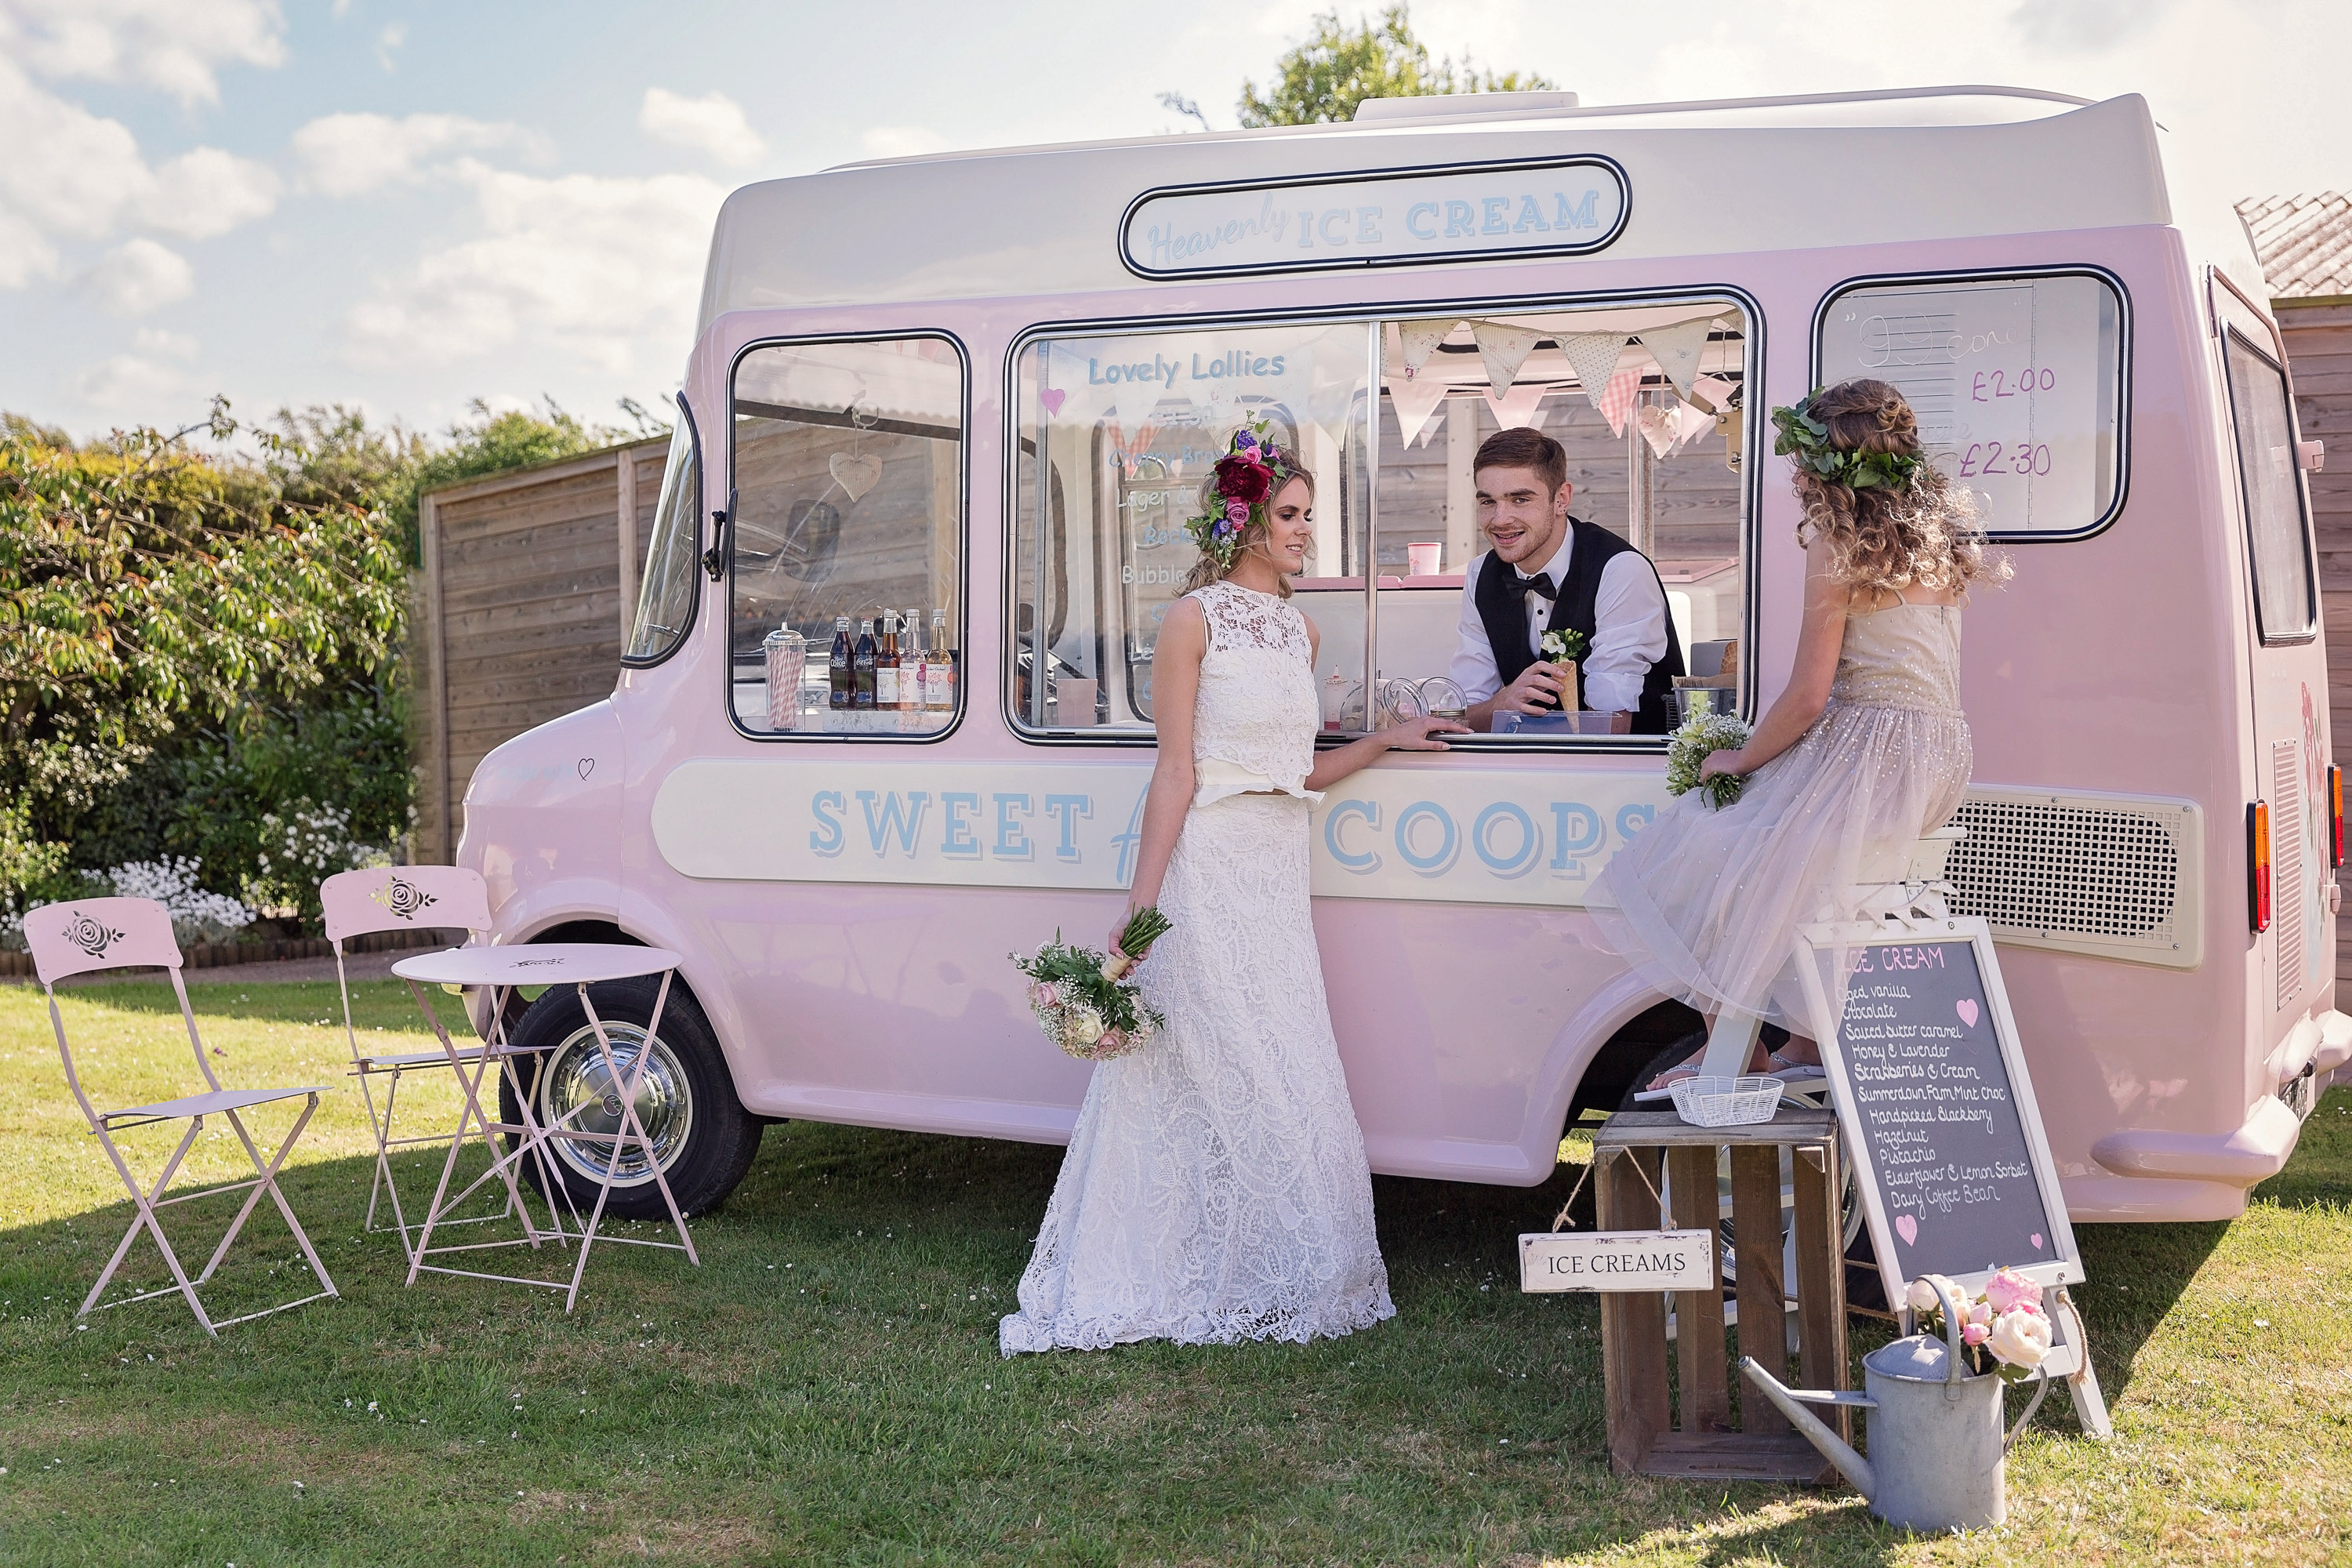 Vintage Ice Cream Van to hire for Weddings